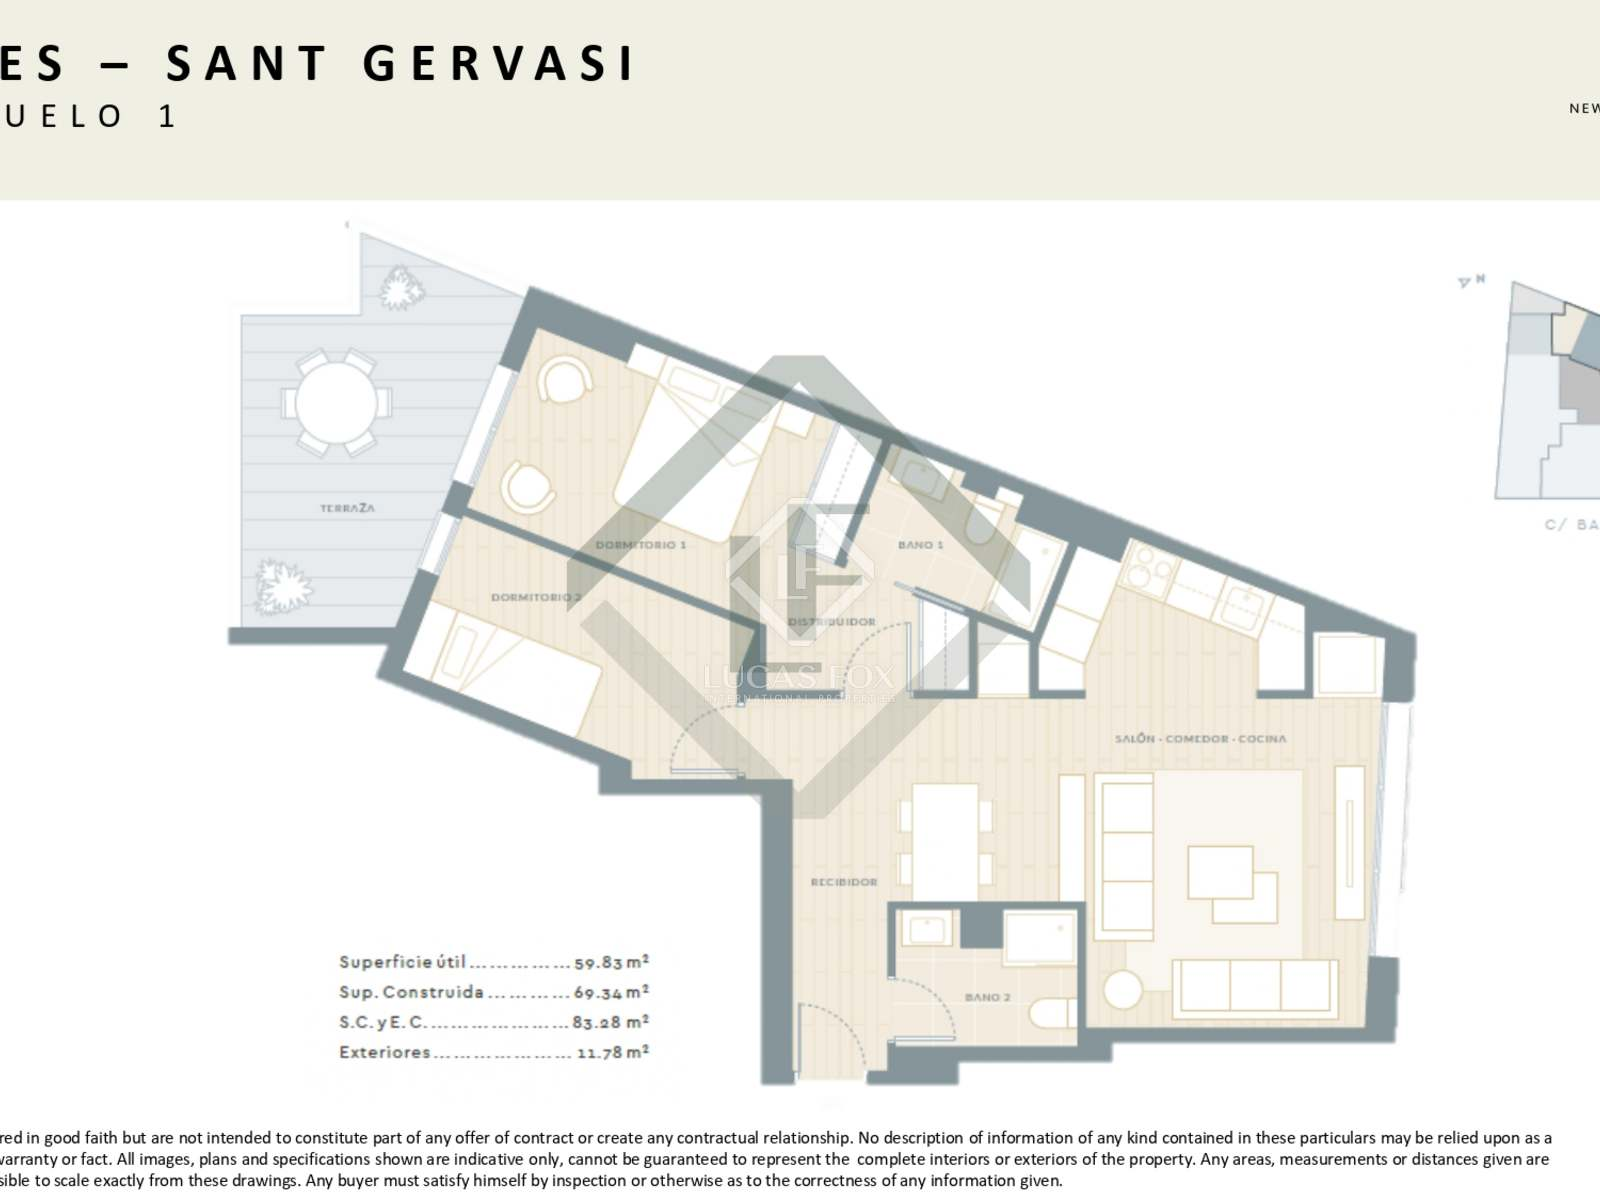 Floorplan : Some unit images shown are computer generated or indicative only